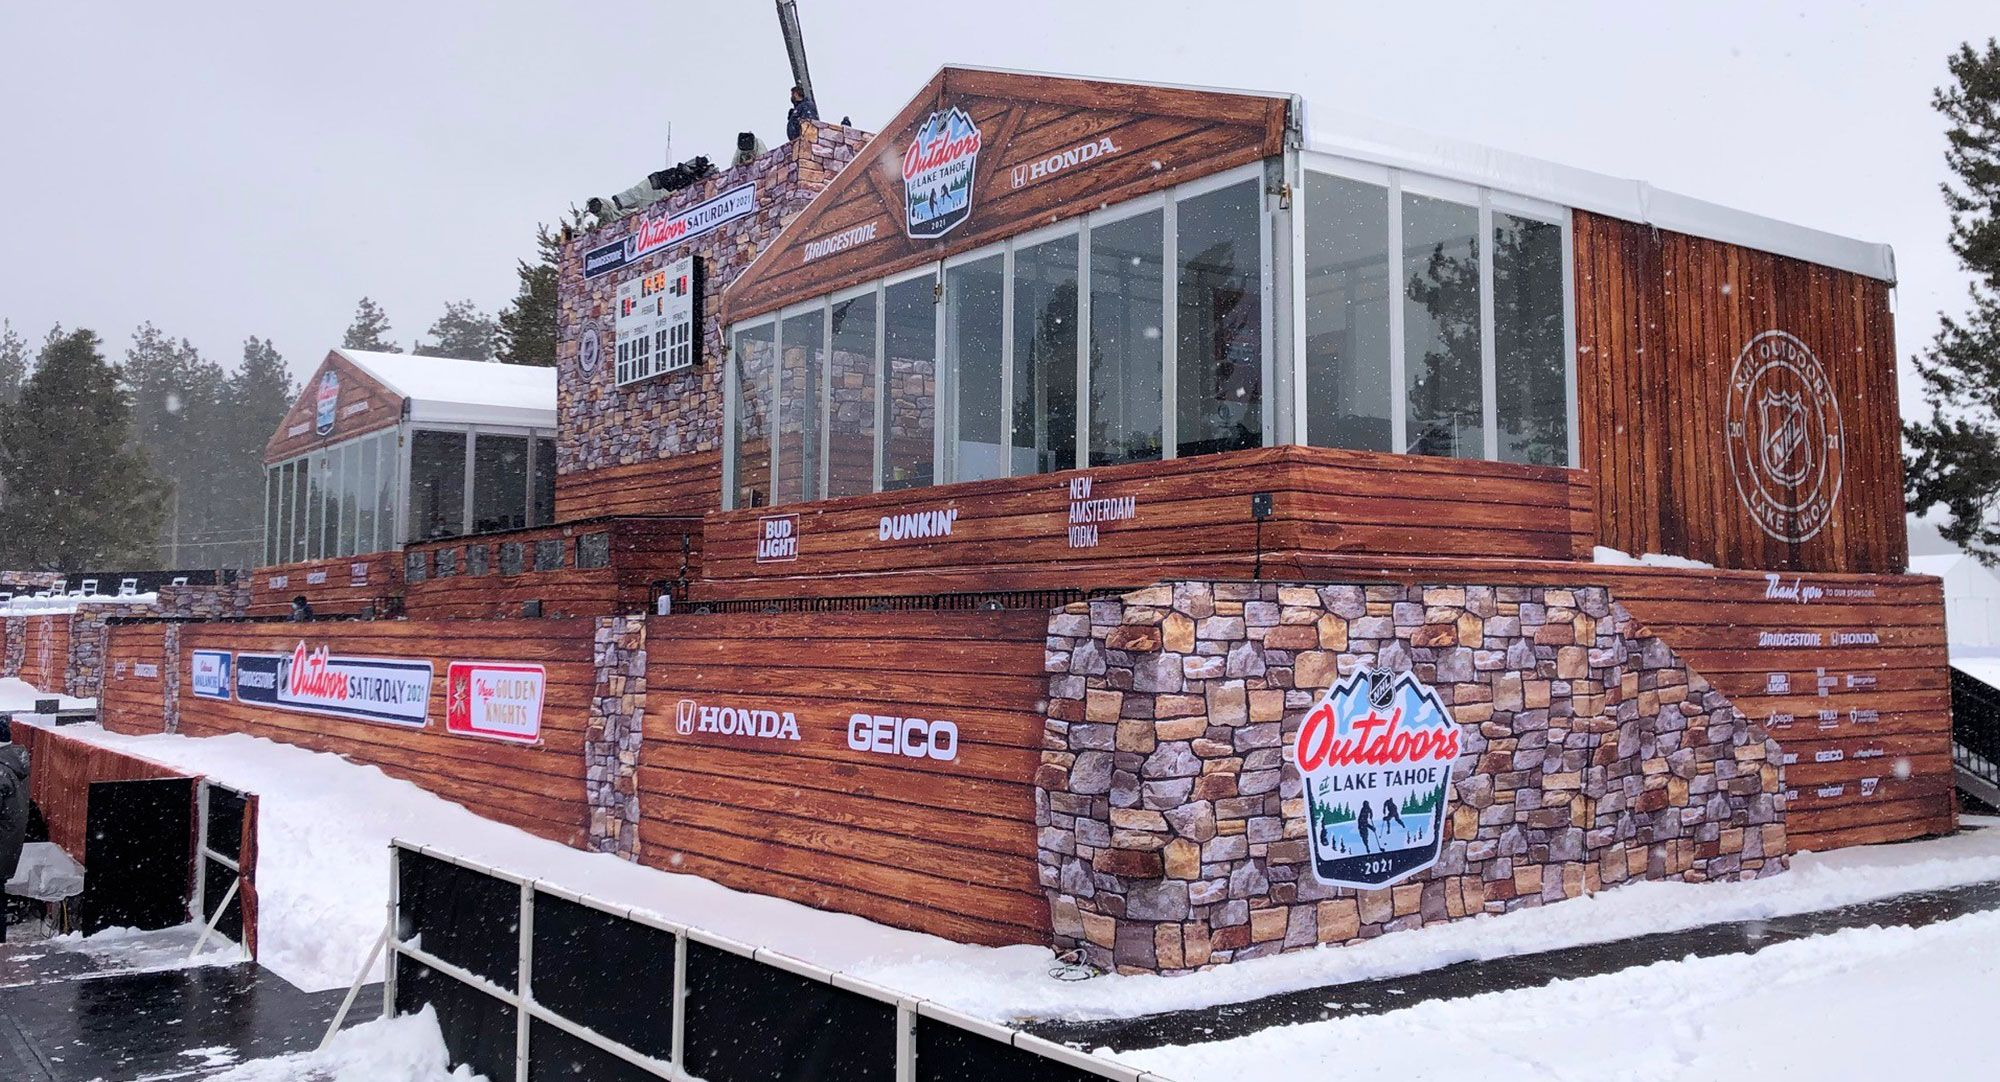 NHL Outdoor Games Tahoe 2021 Showcase Image